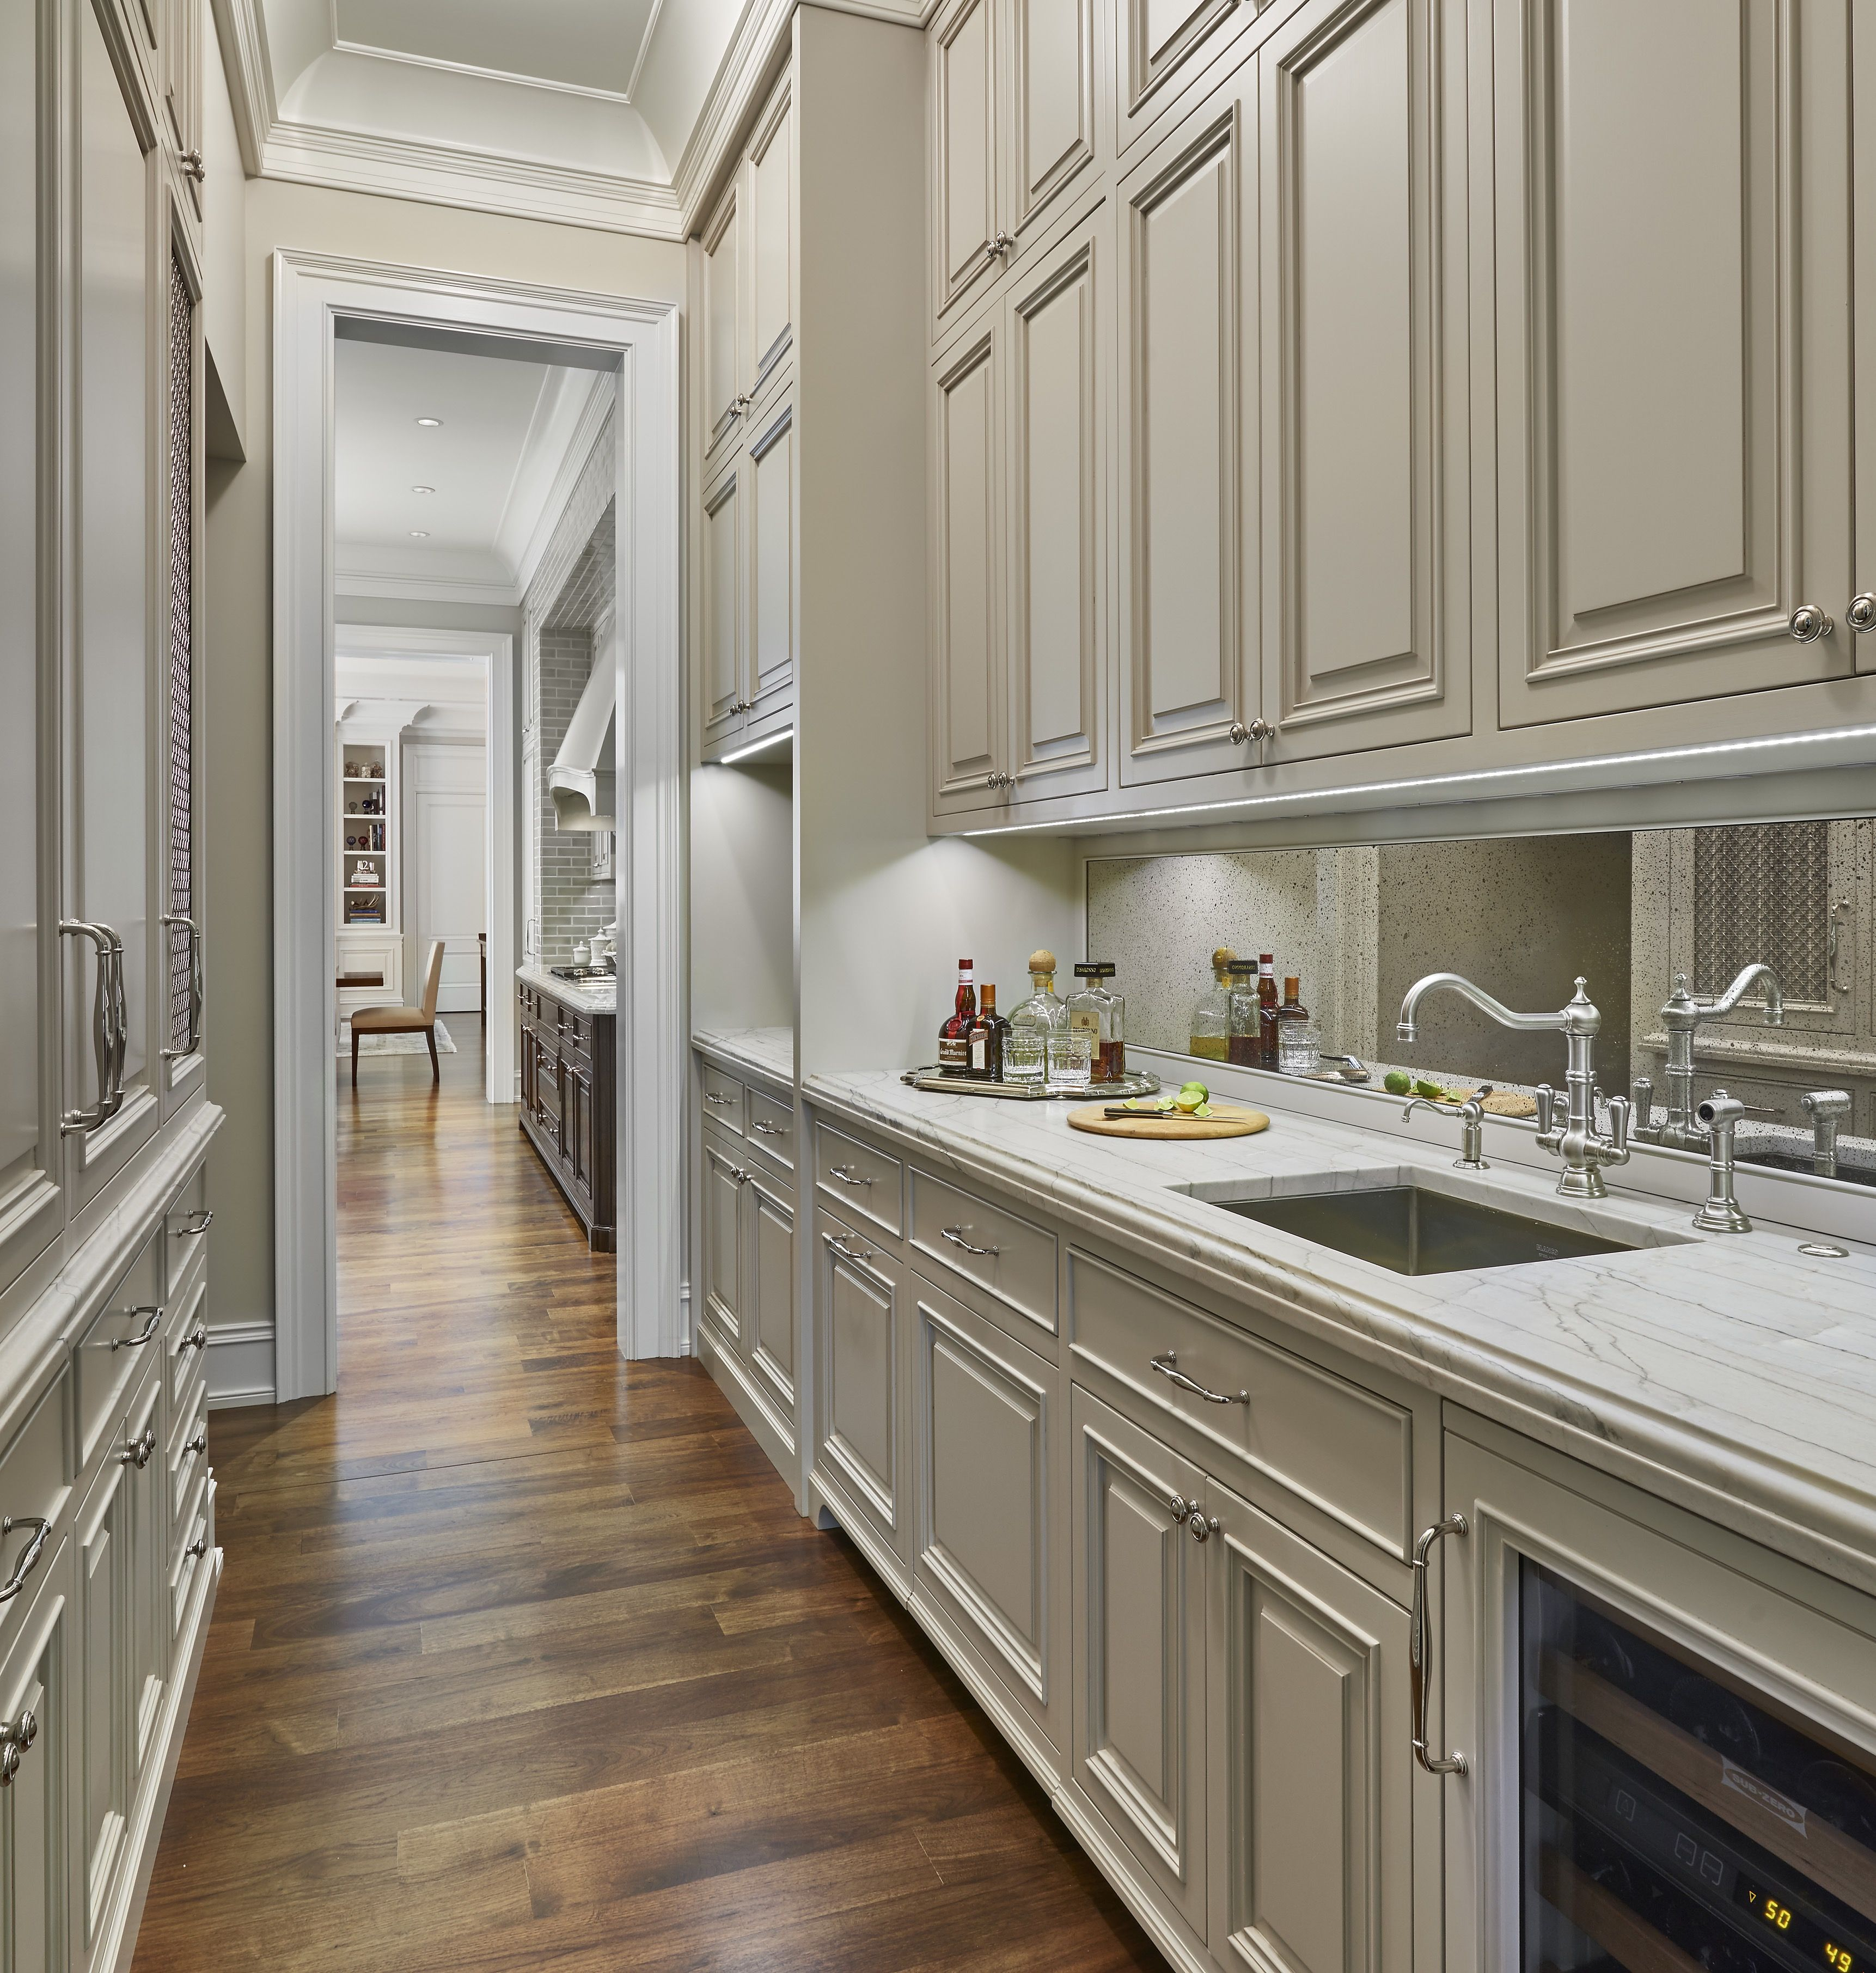 simple cabinet amazing nice design home kitchen under classy ideas to new pantry tall improvement cool furniture interior